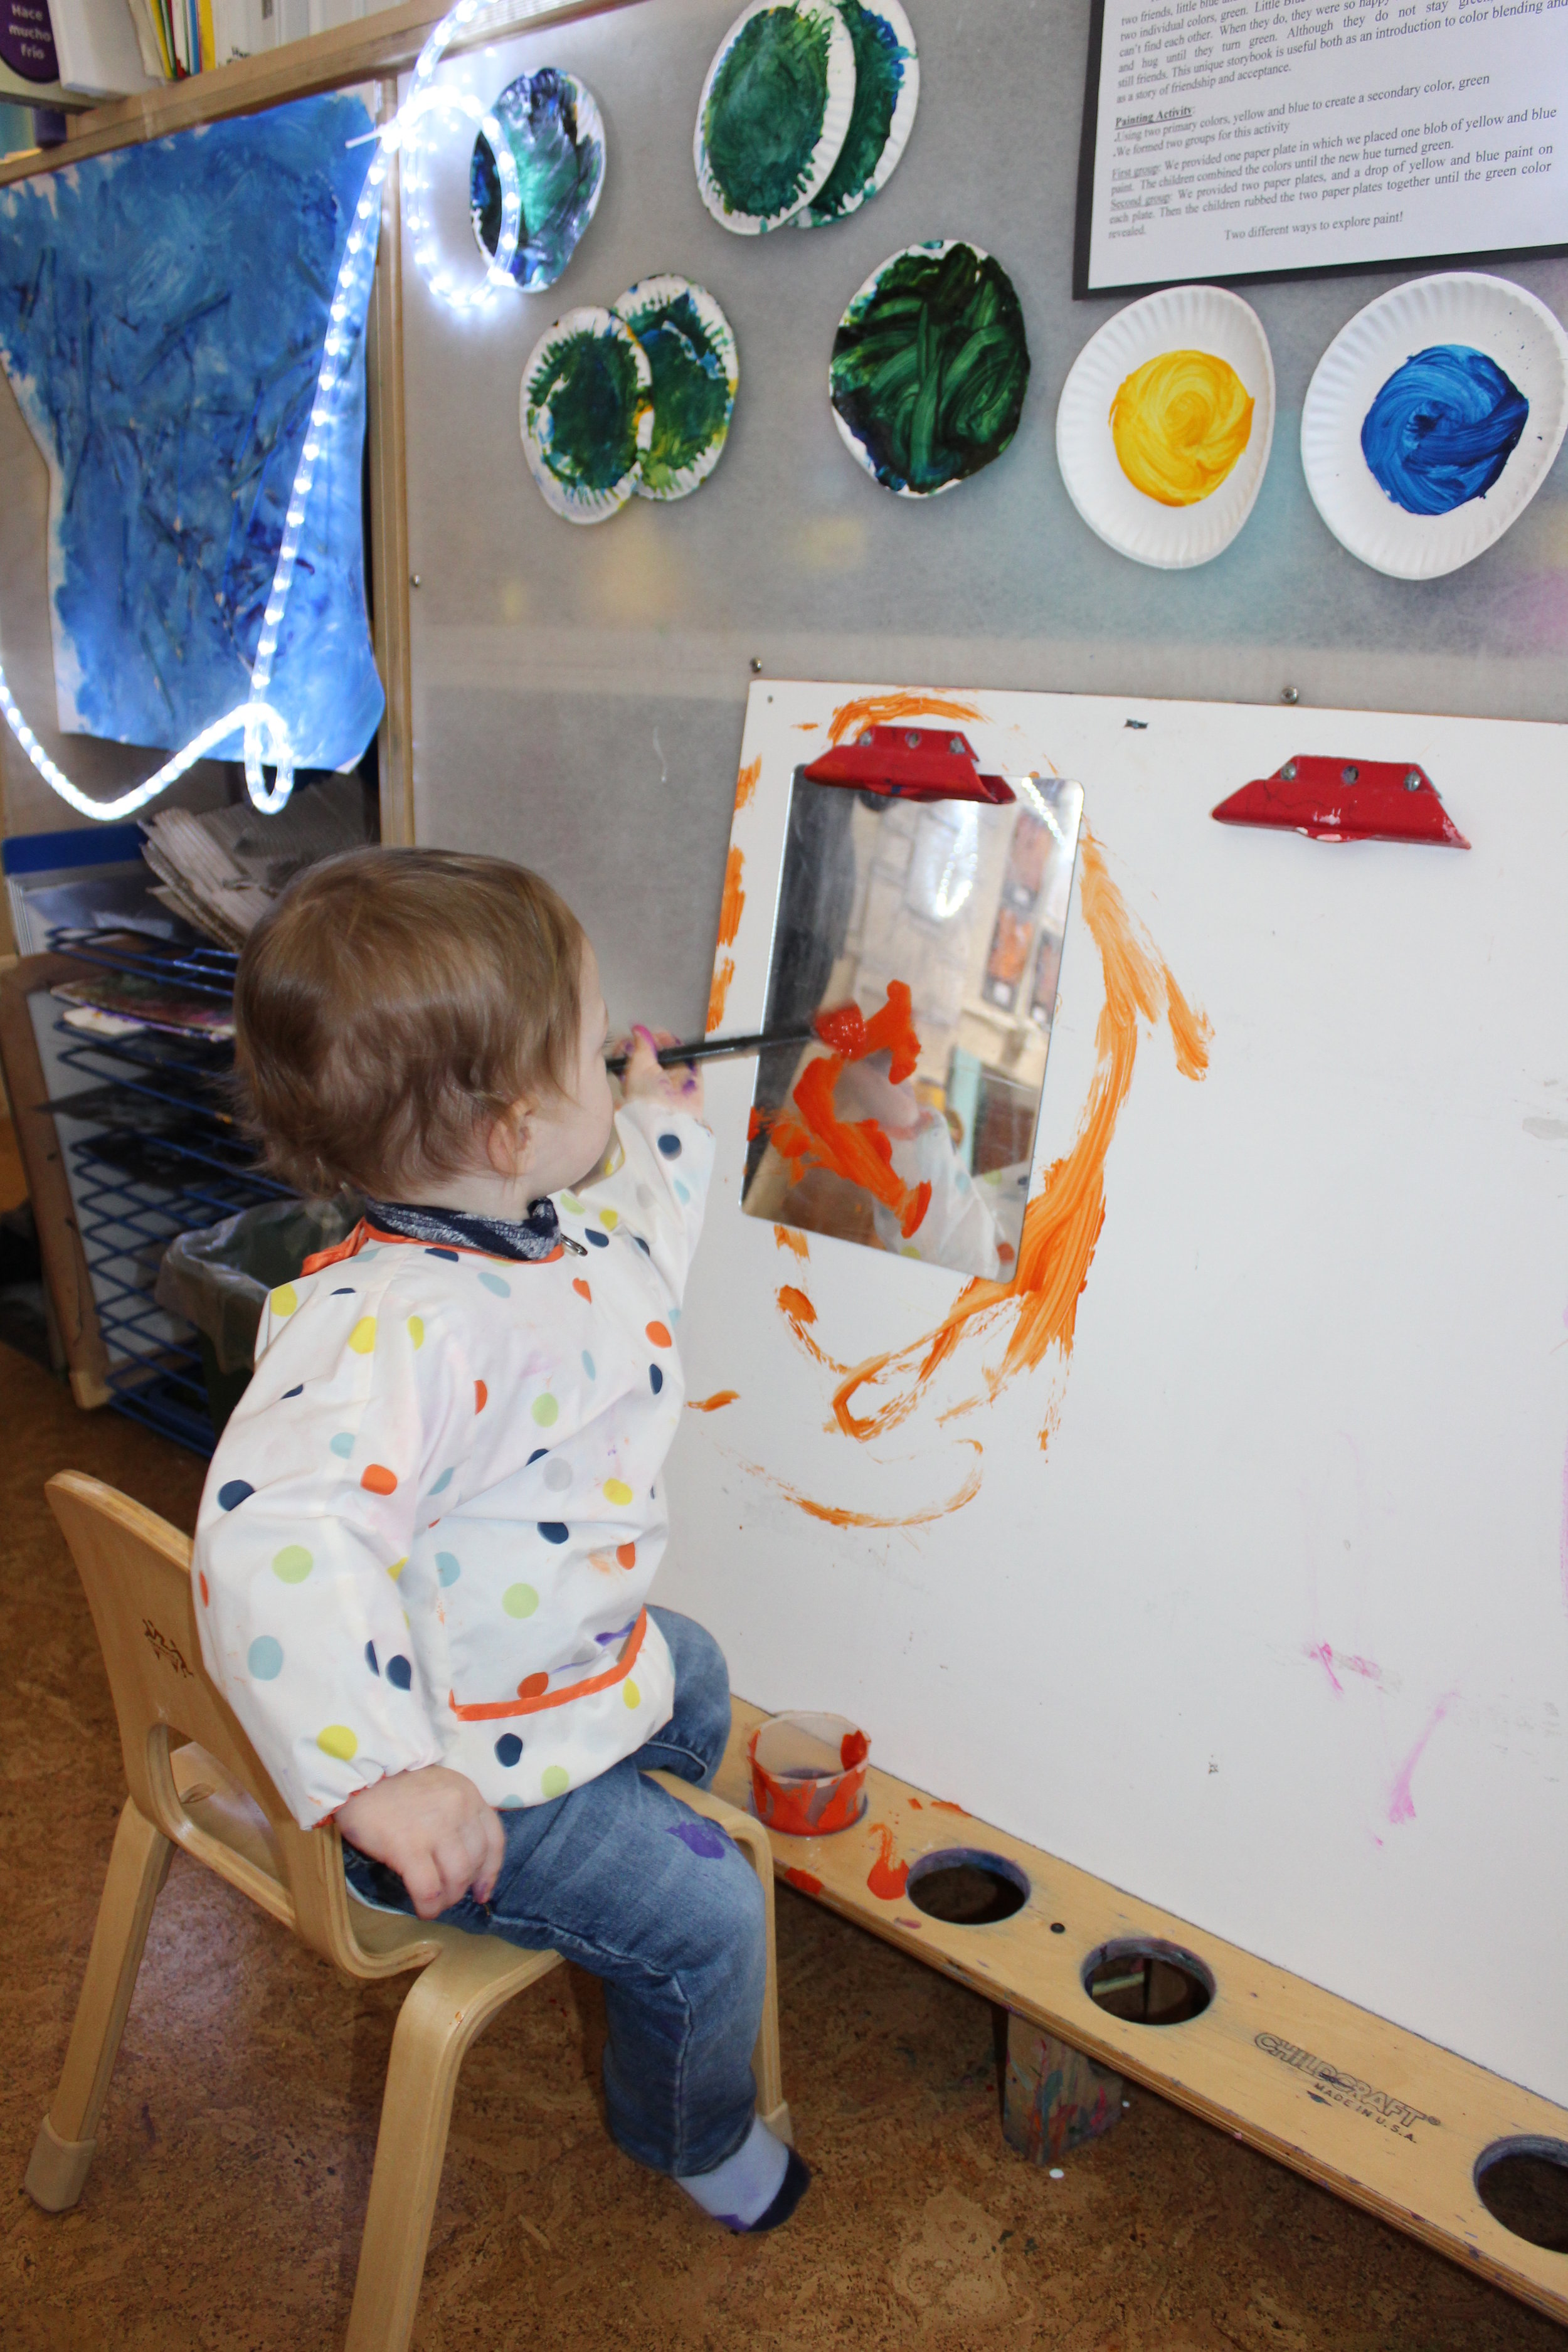 Grayson is feeling at ease in his classroom environment and interacting with different materials.    This fun activity helps children to experience a different form of painting on paper.It allows them to explore, experiment and discover that the composition of paint appears differently on each surface they paint on.Mirror paper makes the painting shimmer, and the metallic surface creates a shiny and slippery appearance.Each child projected different strokes on the mirror using paintbrushes.As they see their reflection, they also see the different strokes he/she has painted.